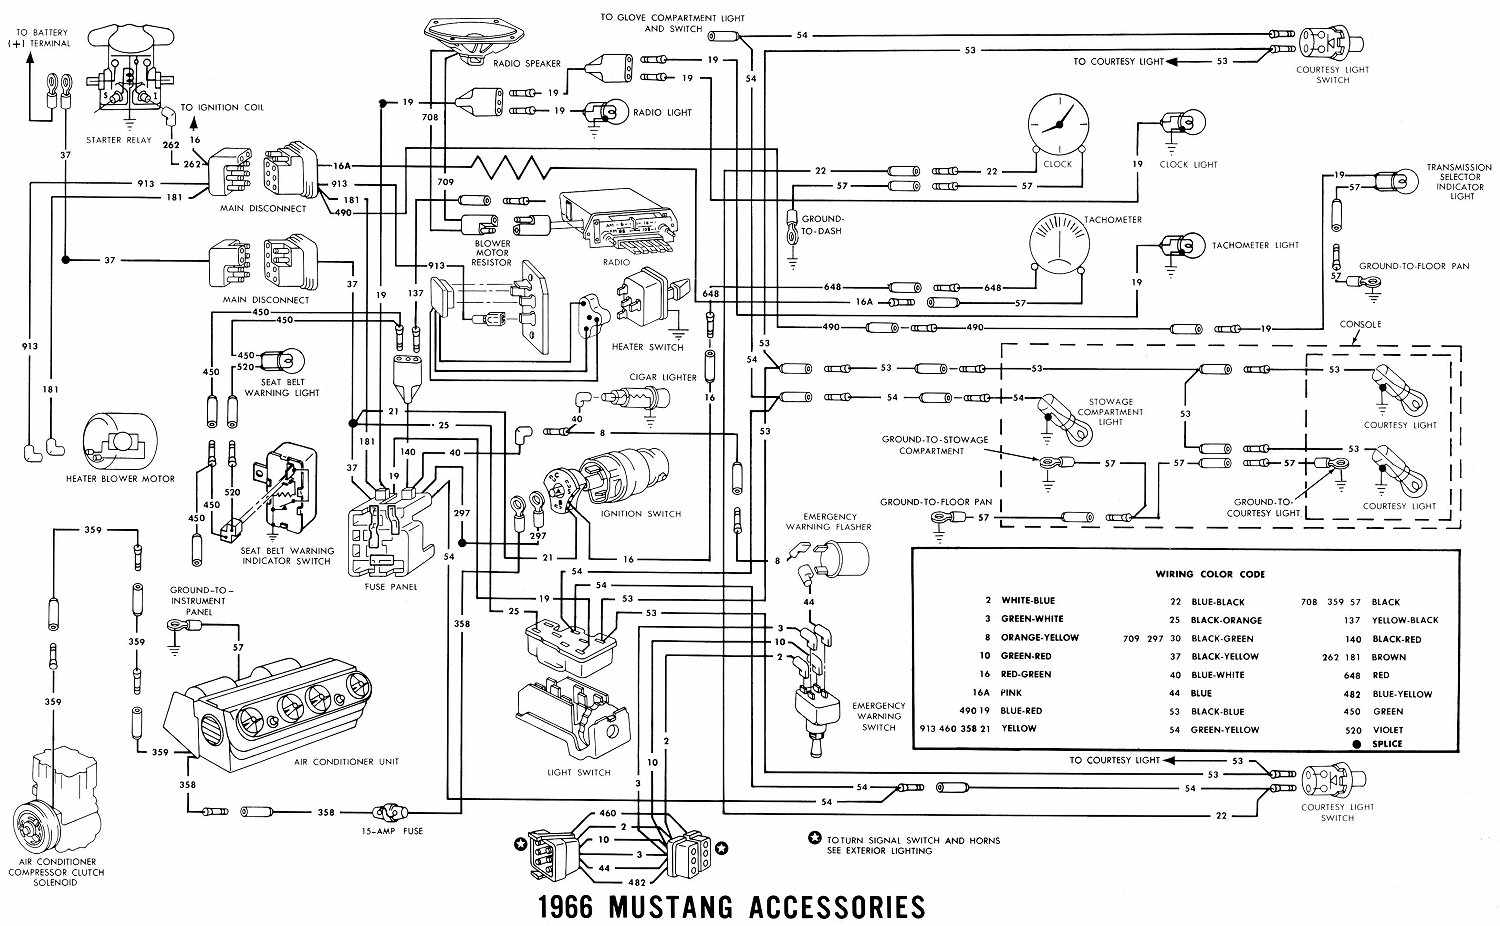 1967 ford mustang wiring diagram color